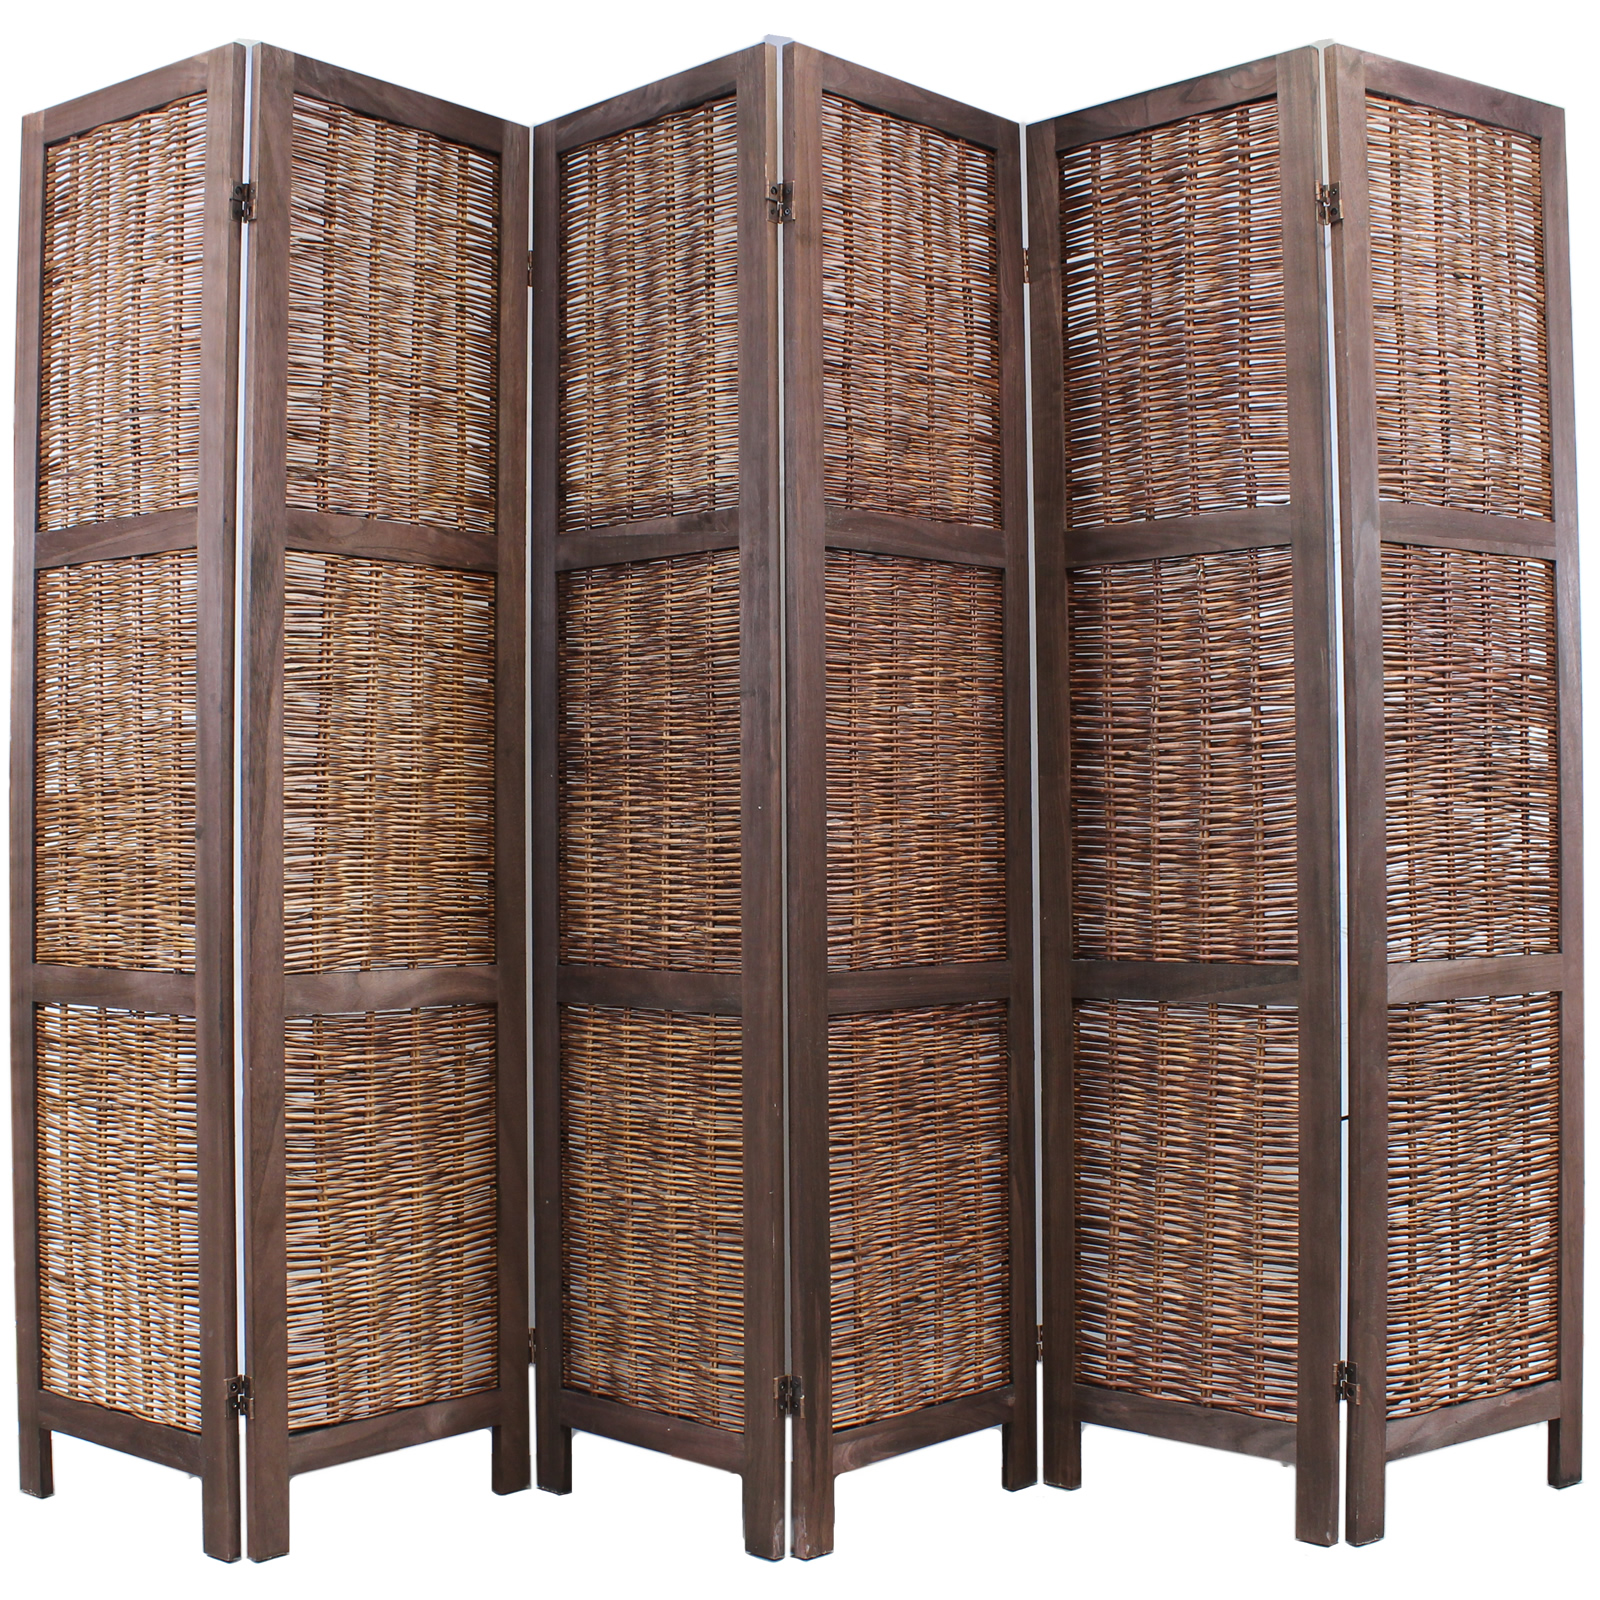 Room Divider Screens Wooden Framed Wicker Room Divider Privacy Screen Partition